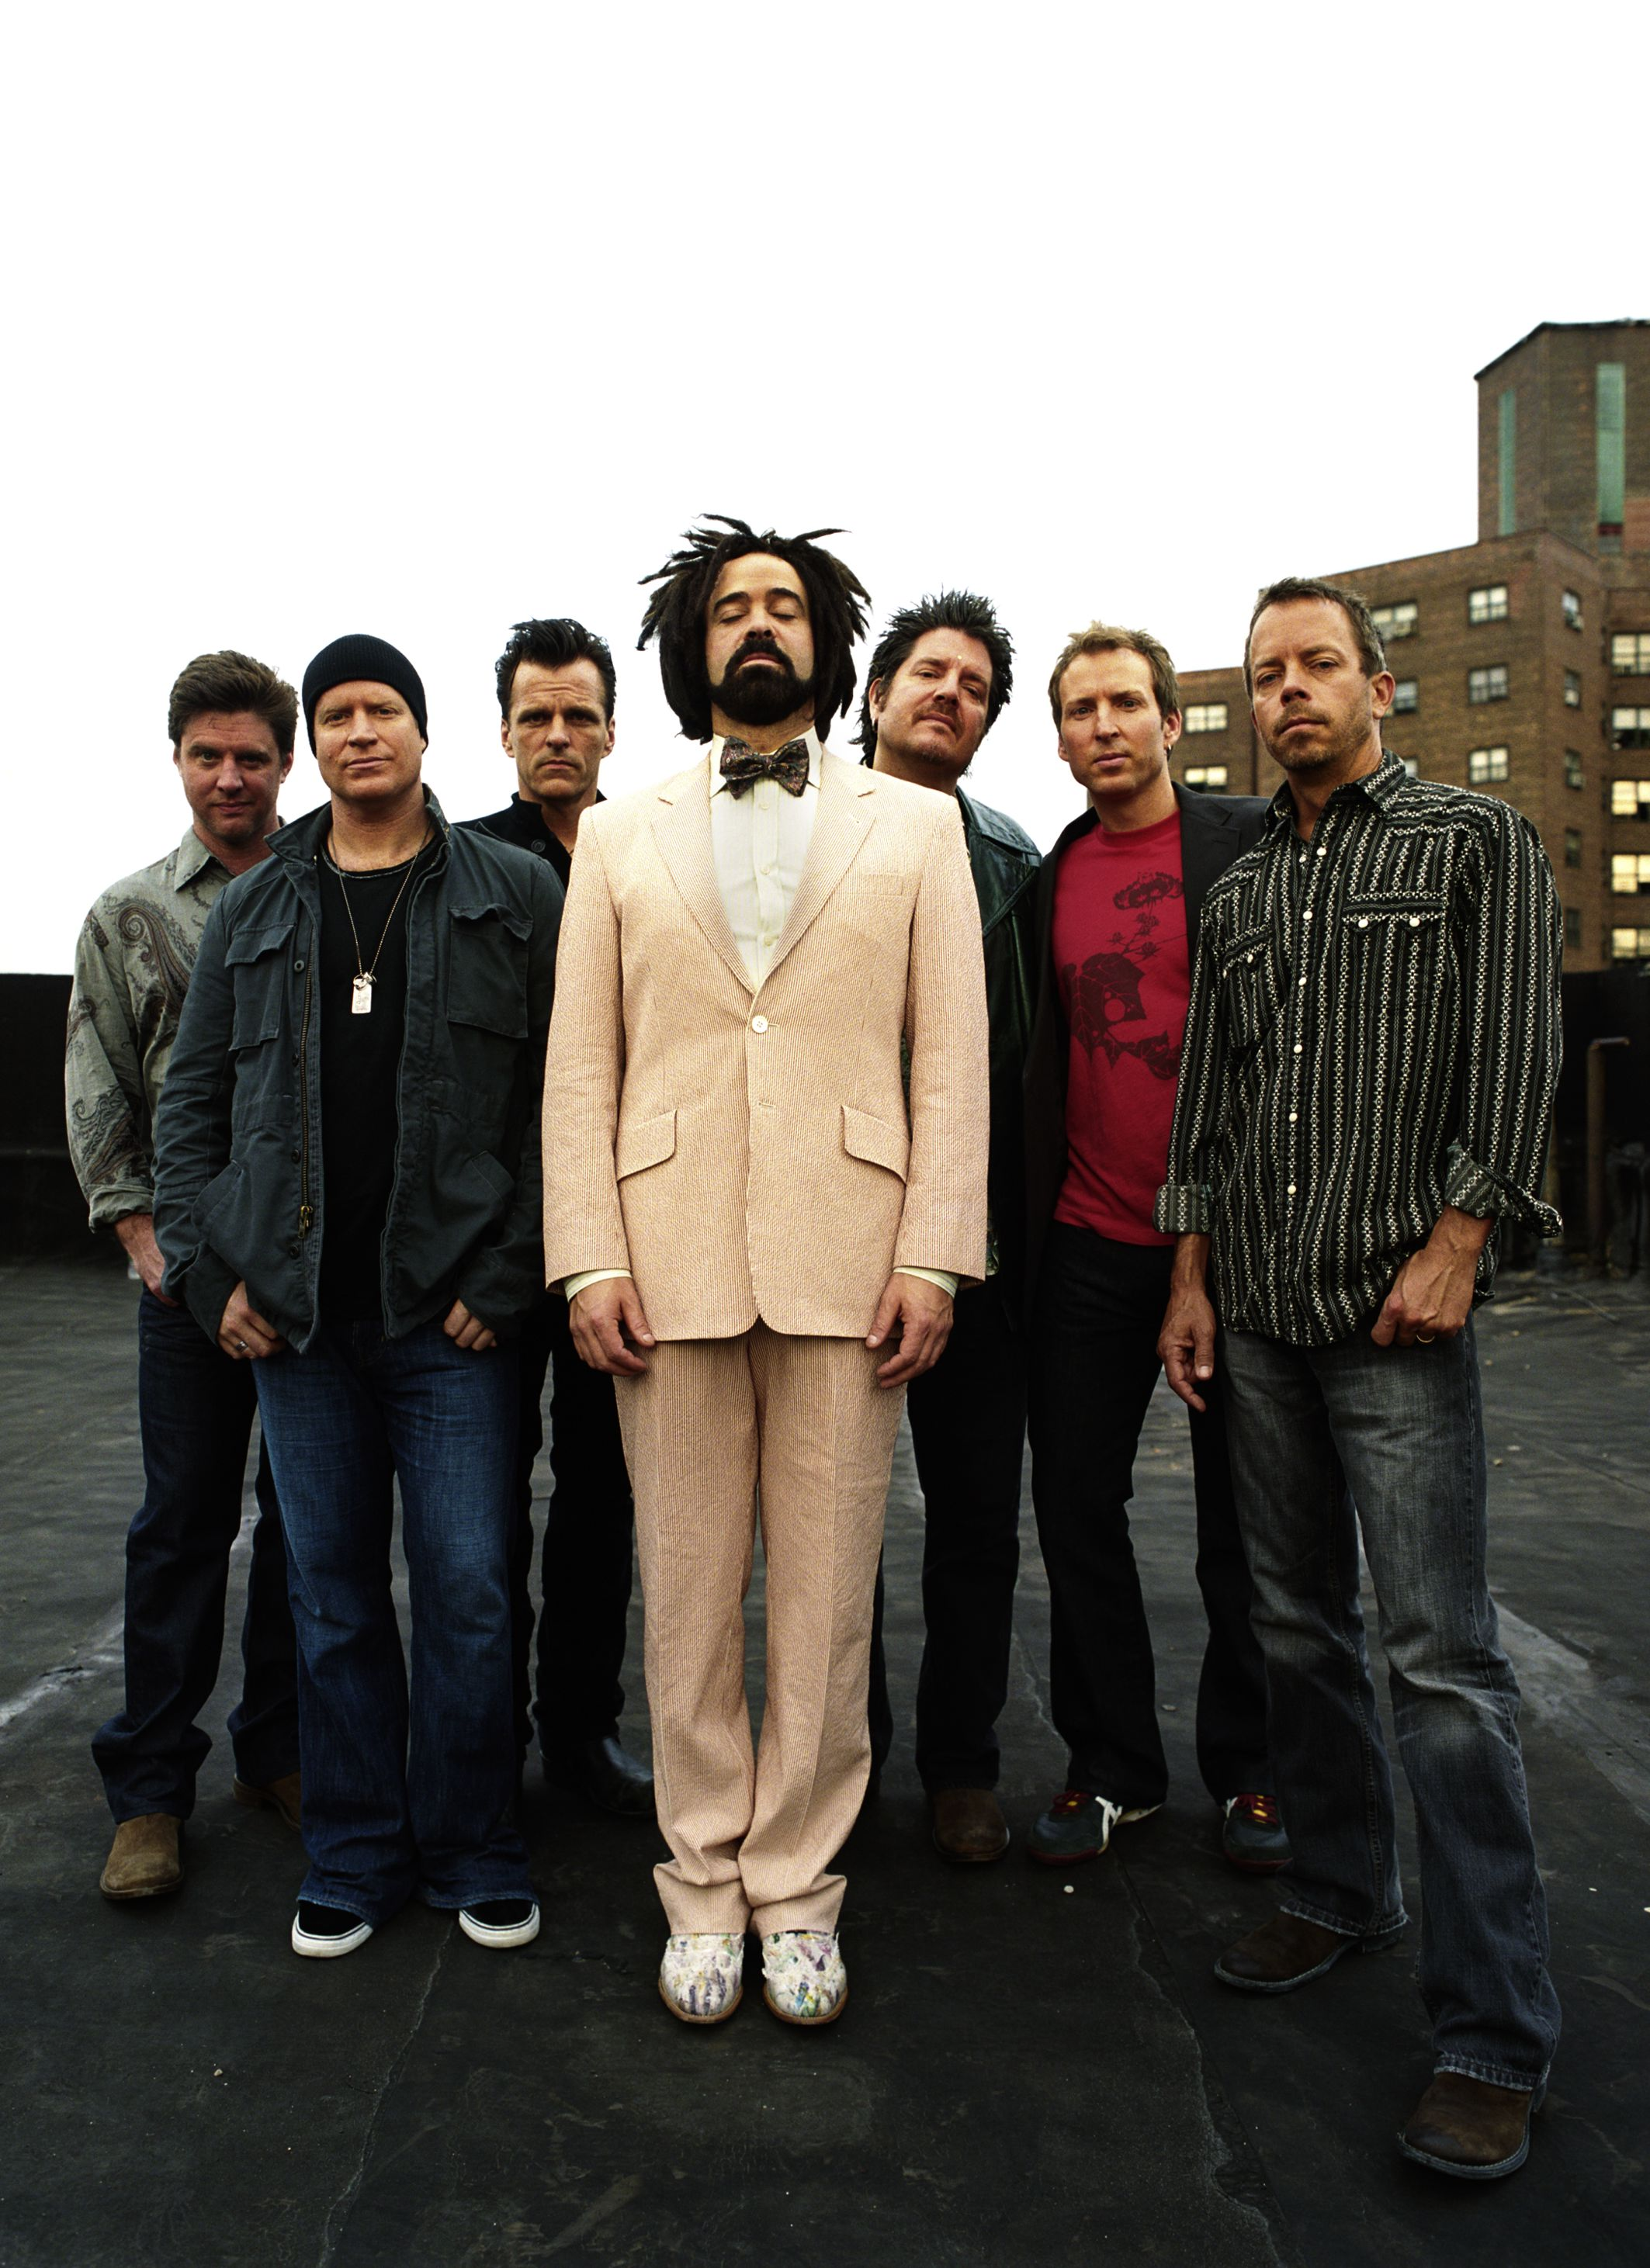 New Music Bundle + Tour Dates From Counting Crows, Only On